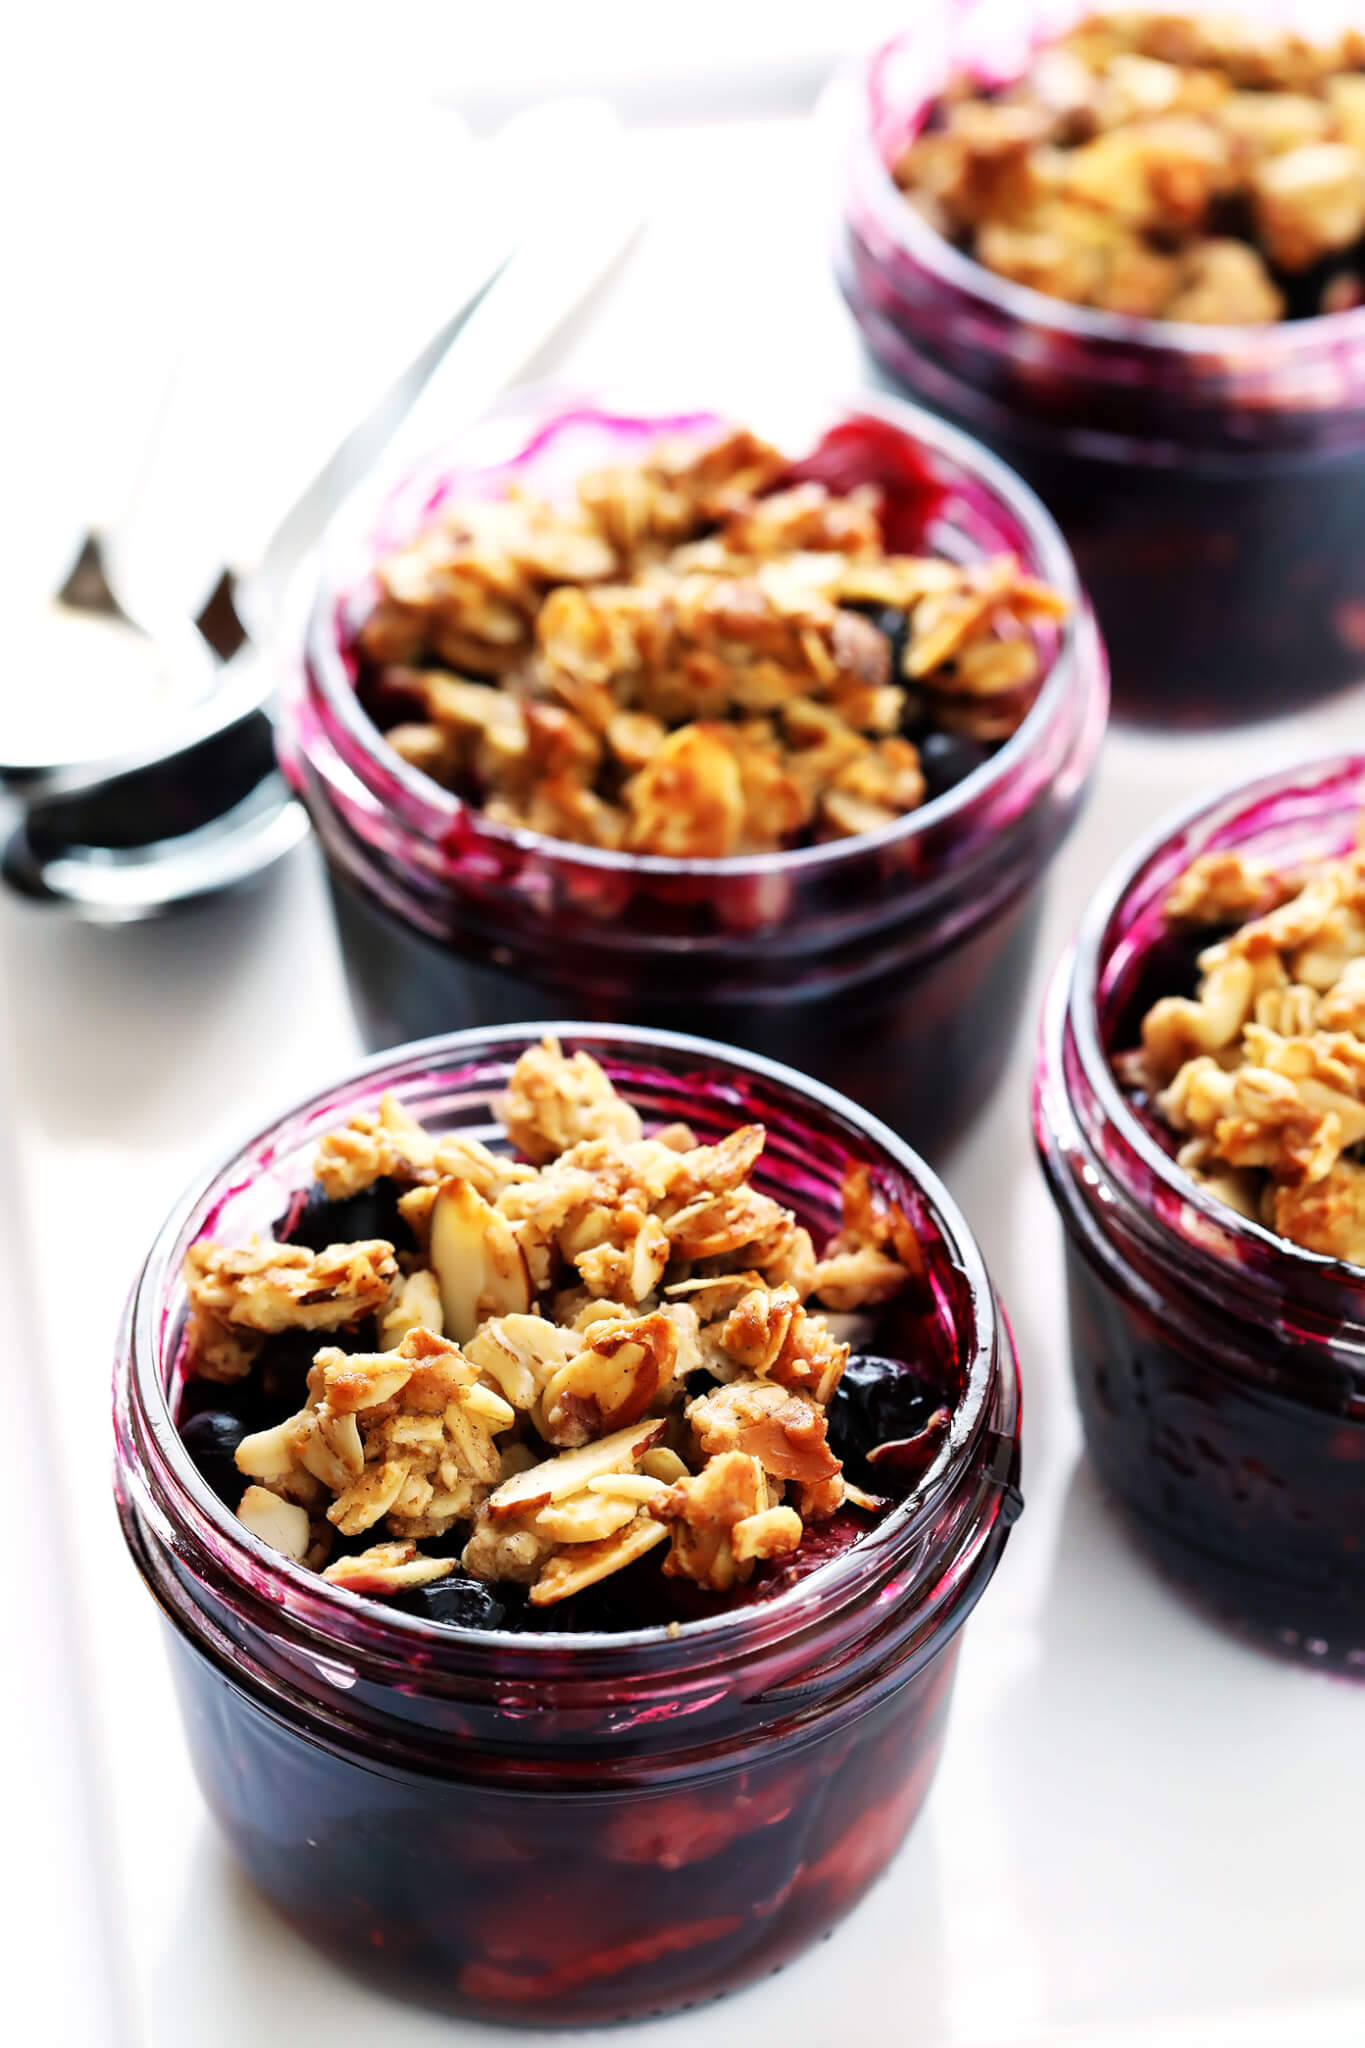 These Mini Mason Jar Fruit Crisps are easy to make with blueberries or your favorite fruit, and topped with a yummy oatmeal-almond topping. They're the perfect quick and easy and seasonal dessert! | gimmesomeoven.com